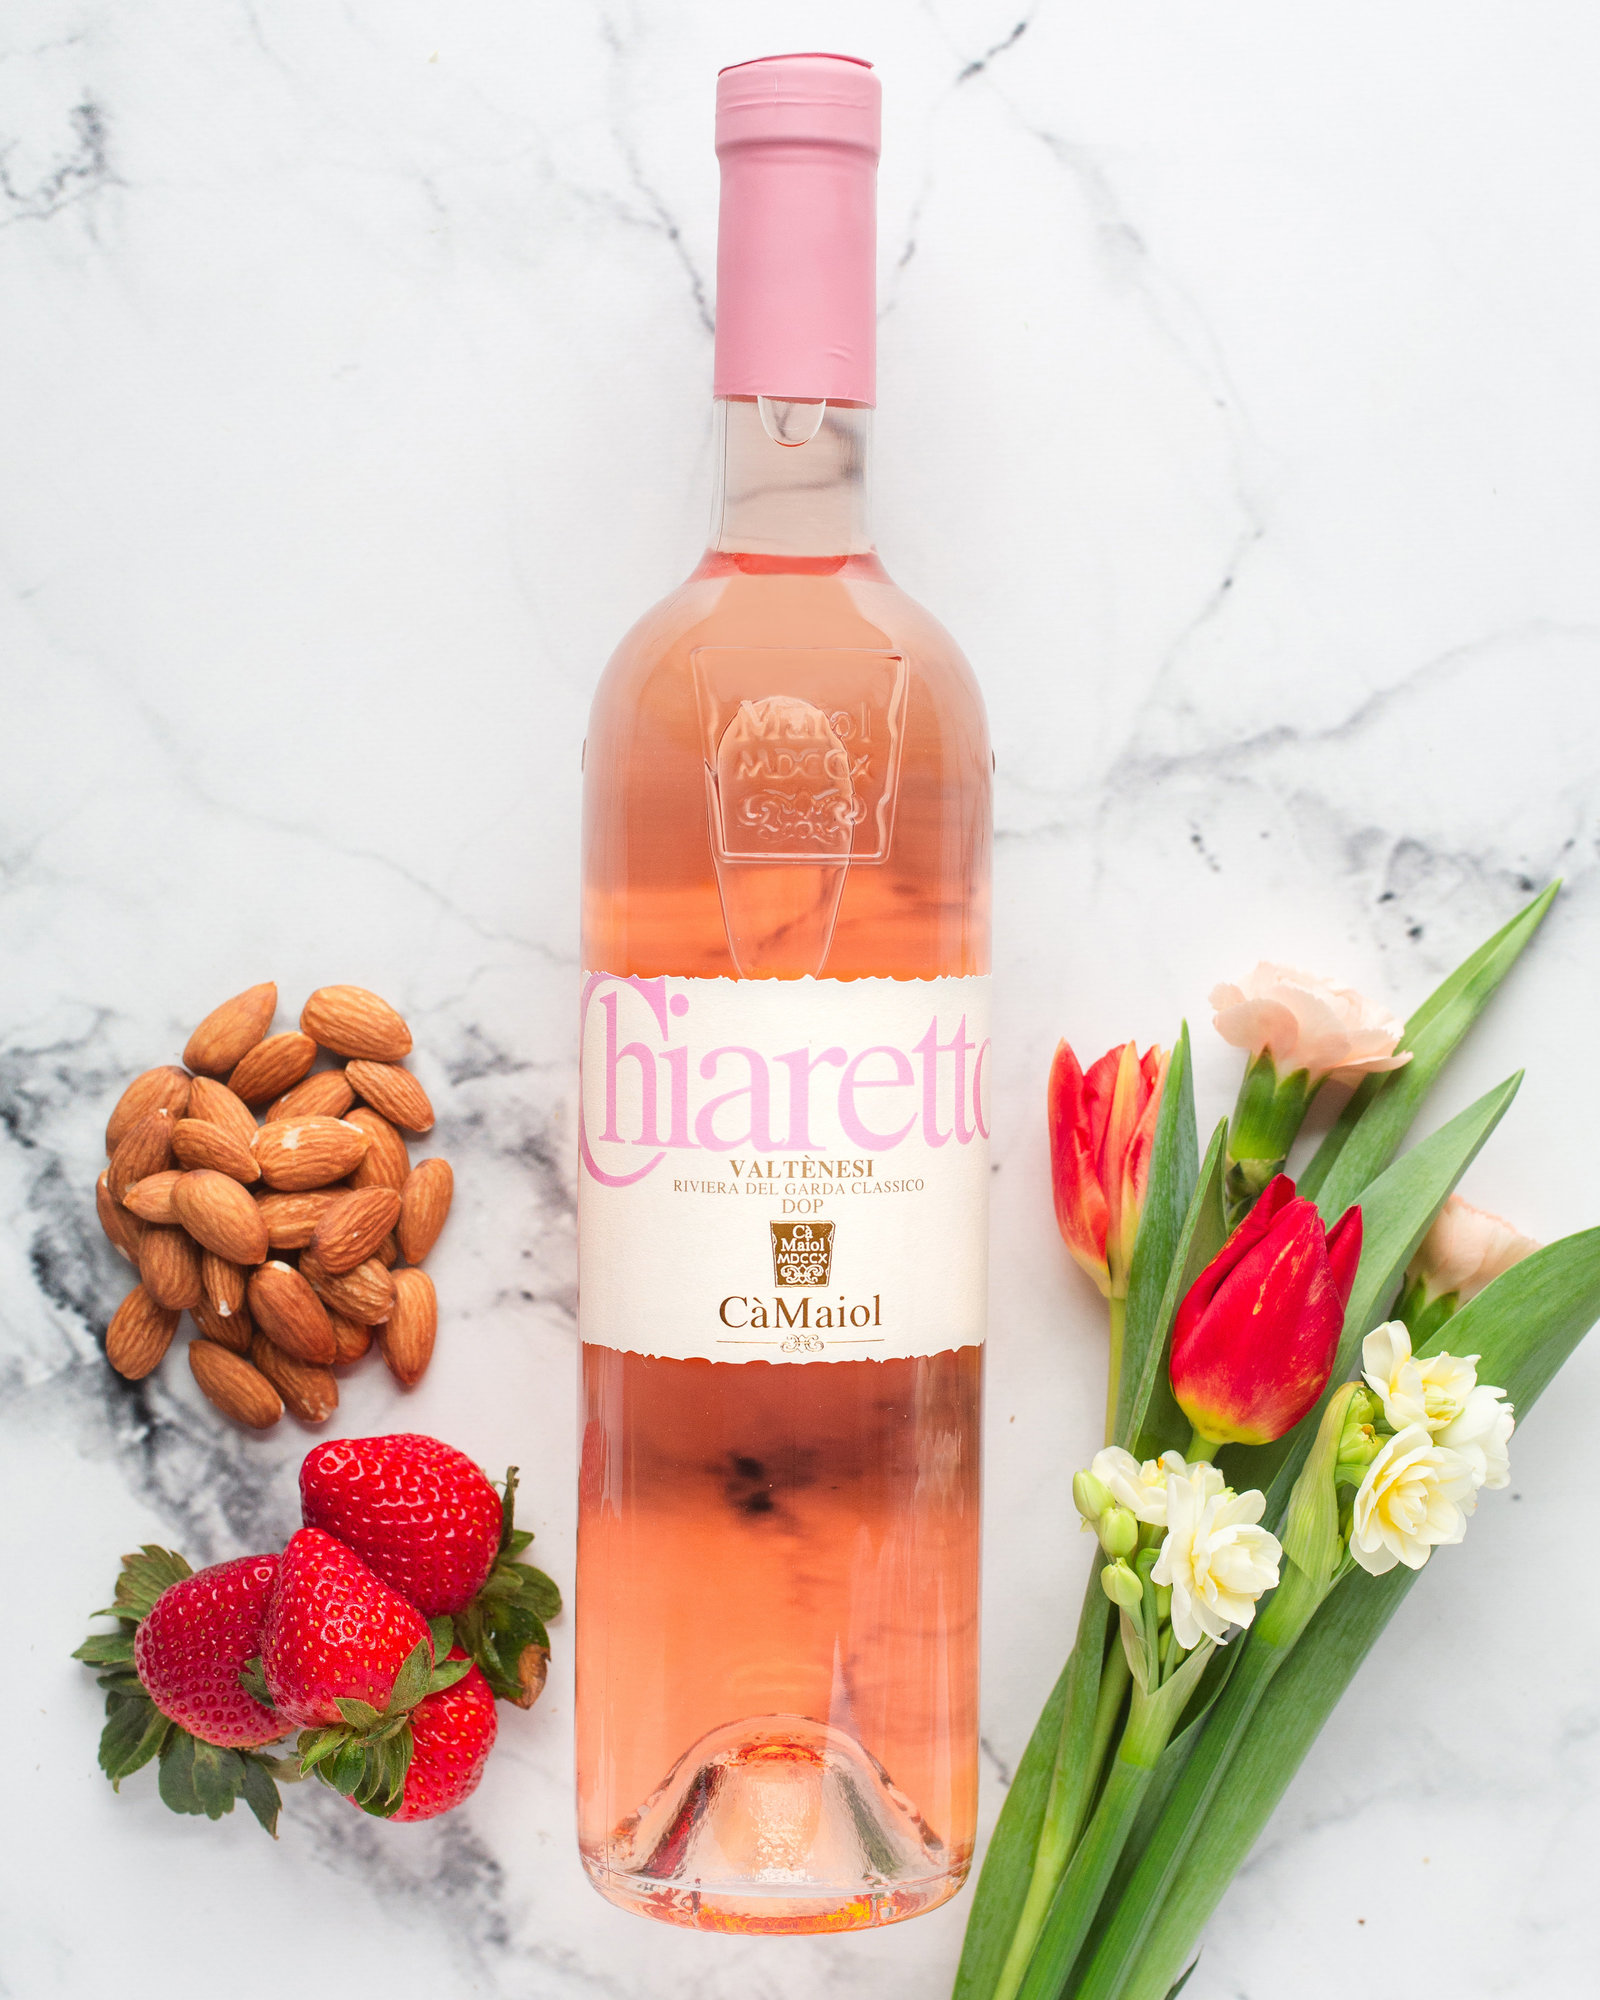 Santa Margherita - Chiaretto - Product Photography - Frenchly -3571